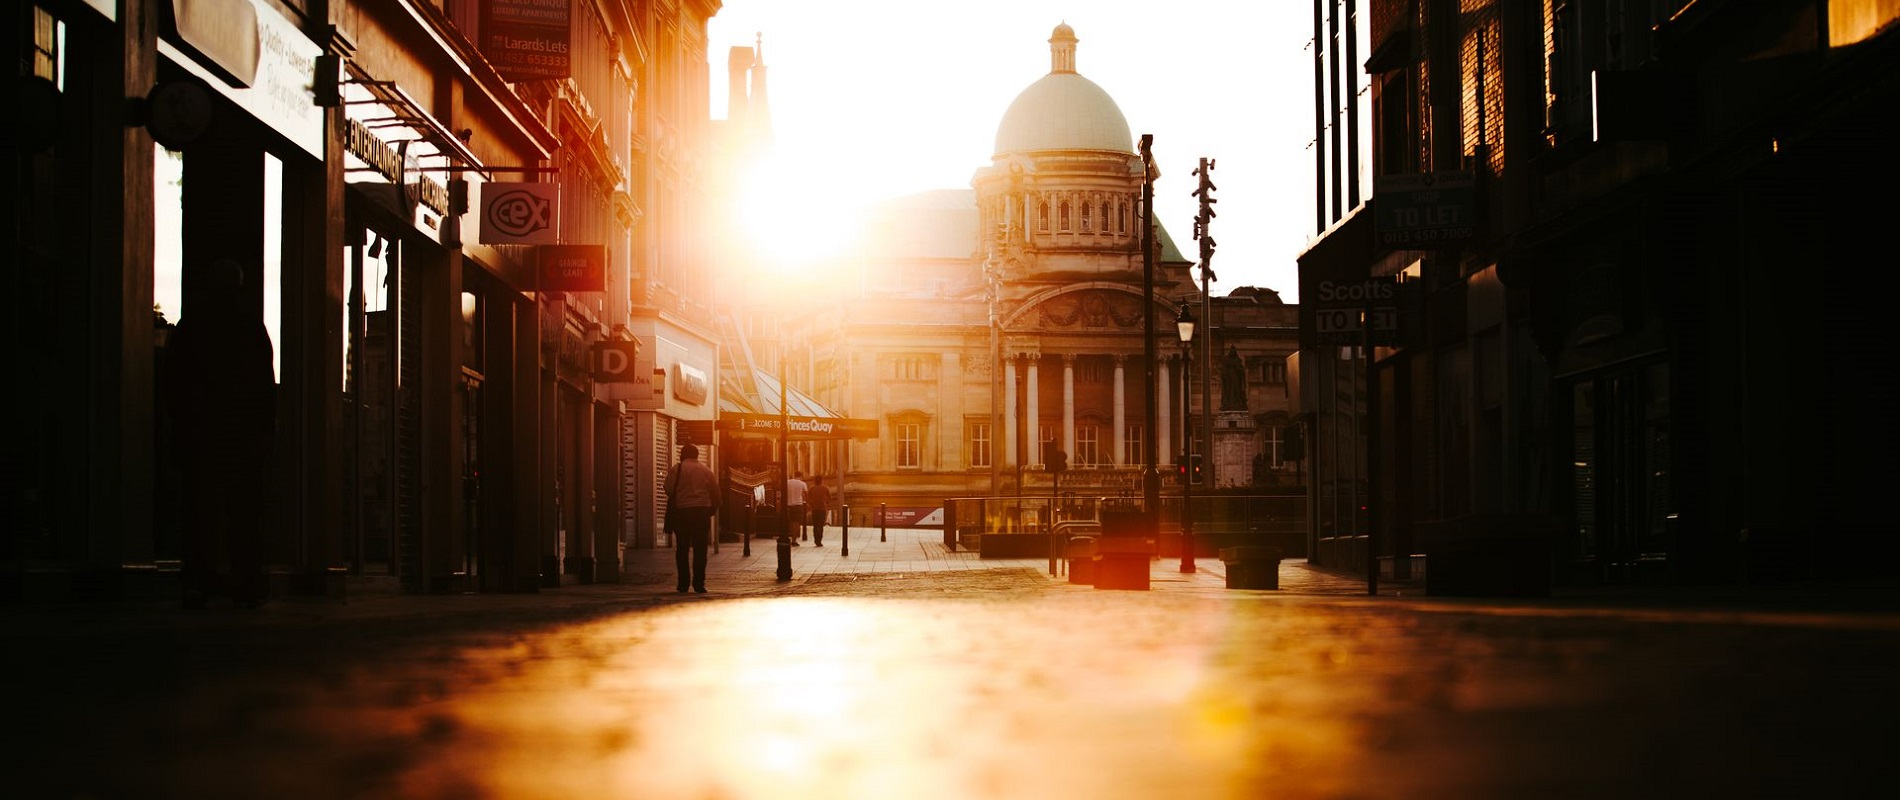 Hull City Hall from Whitefriargate